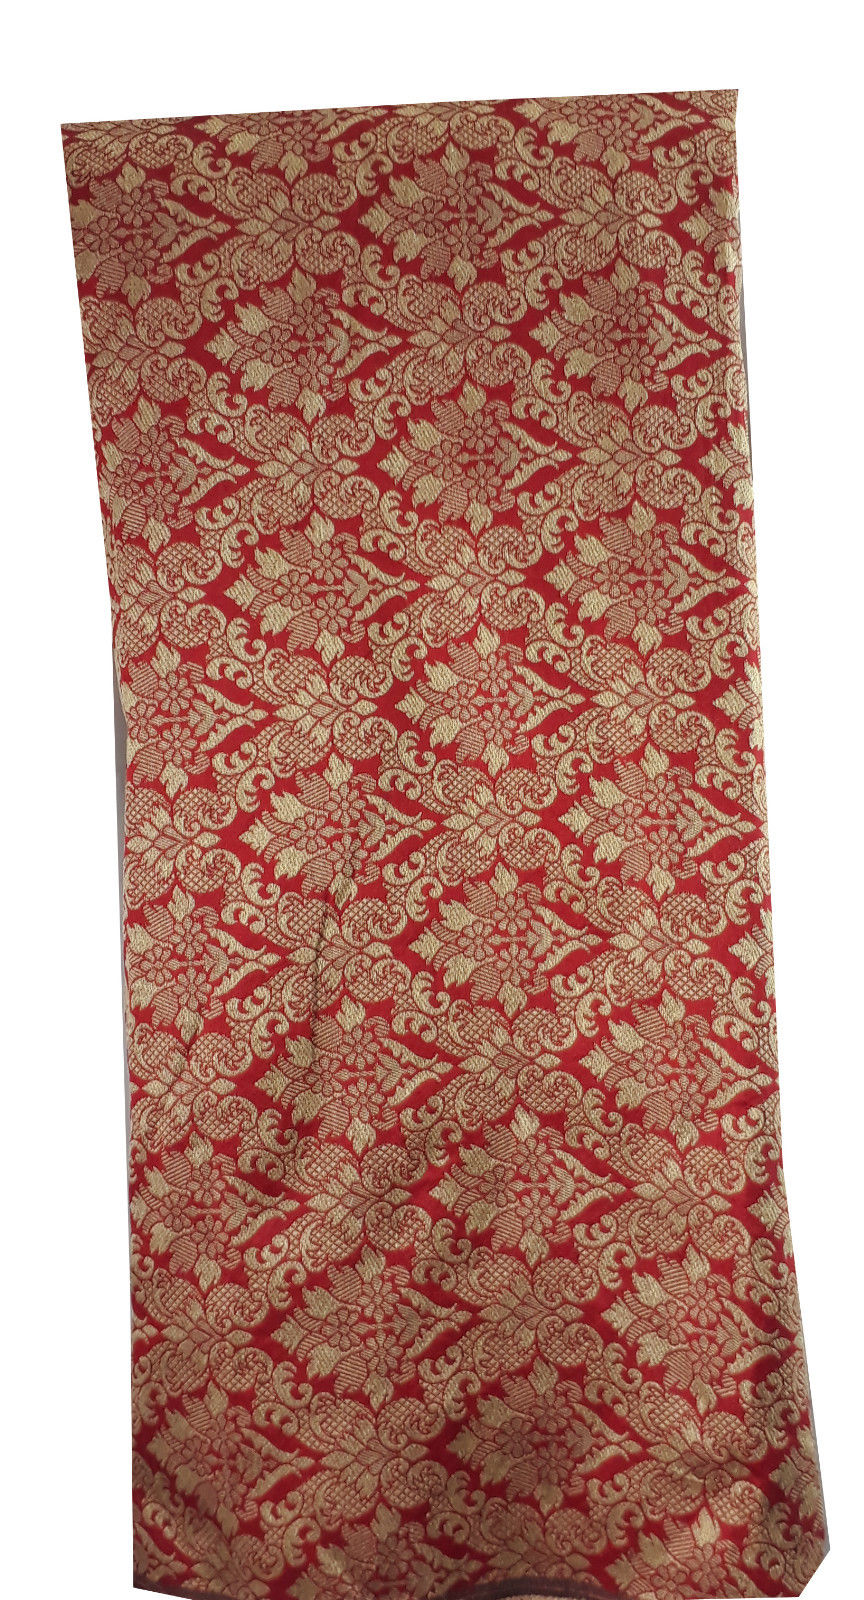 lace fabric online india online wholesale fabric store india Embroidery Faux Silk Brick Red 43 inches Wide 8017